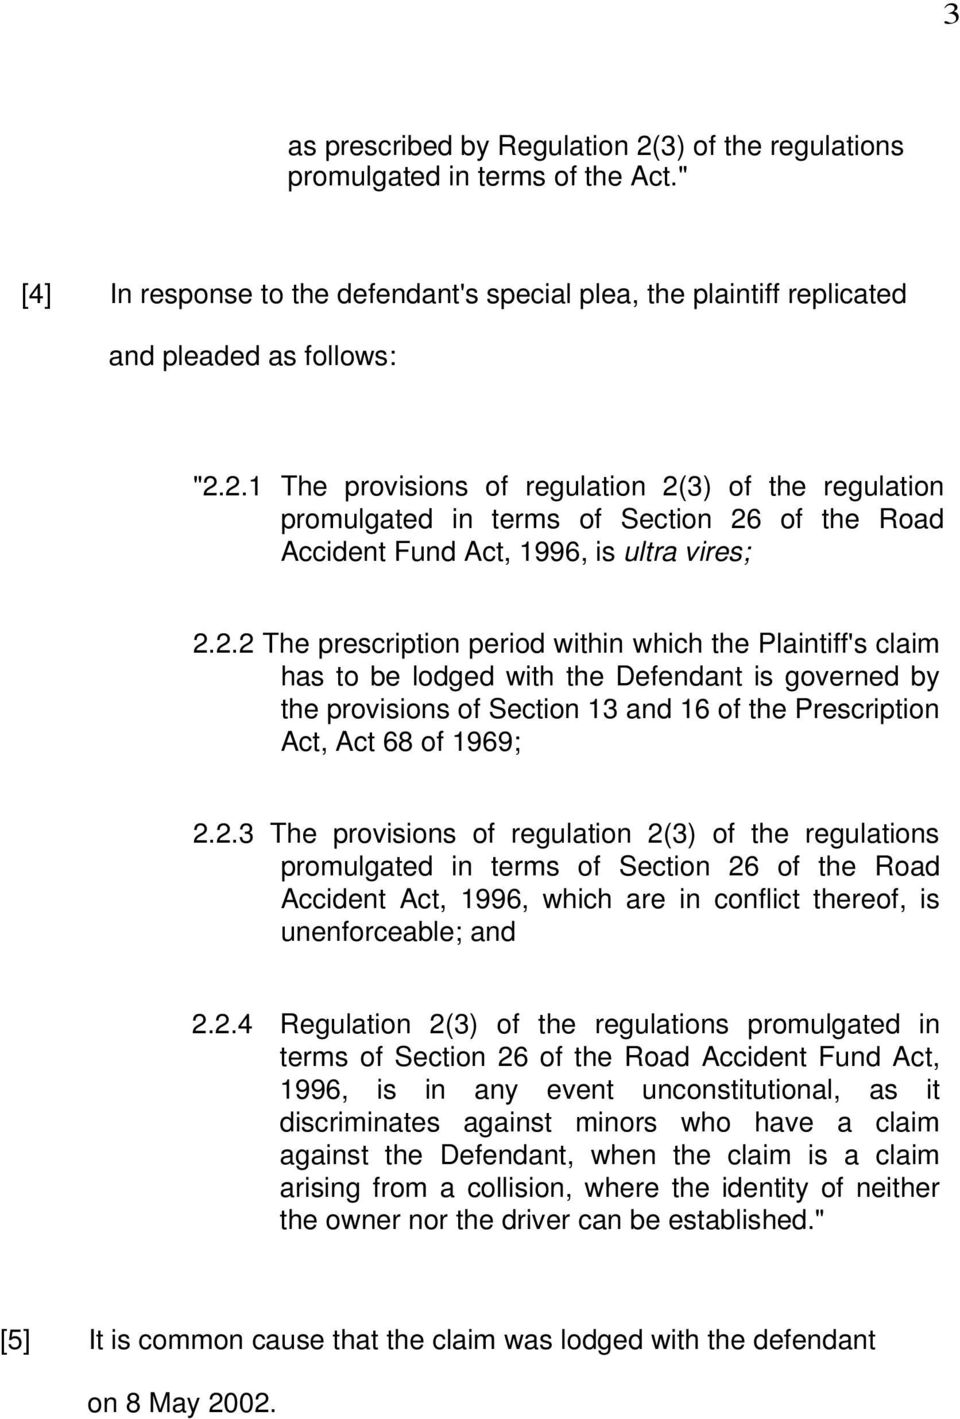 2.4 Regulation 2(3) of the regulations promulgated in terms of Section 26 of the Road Accident Fund Act, 1996, is in any event unconstitutional, as it discriminates against minors who have a claim